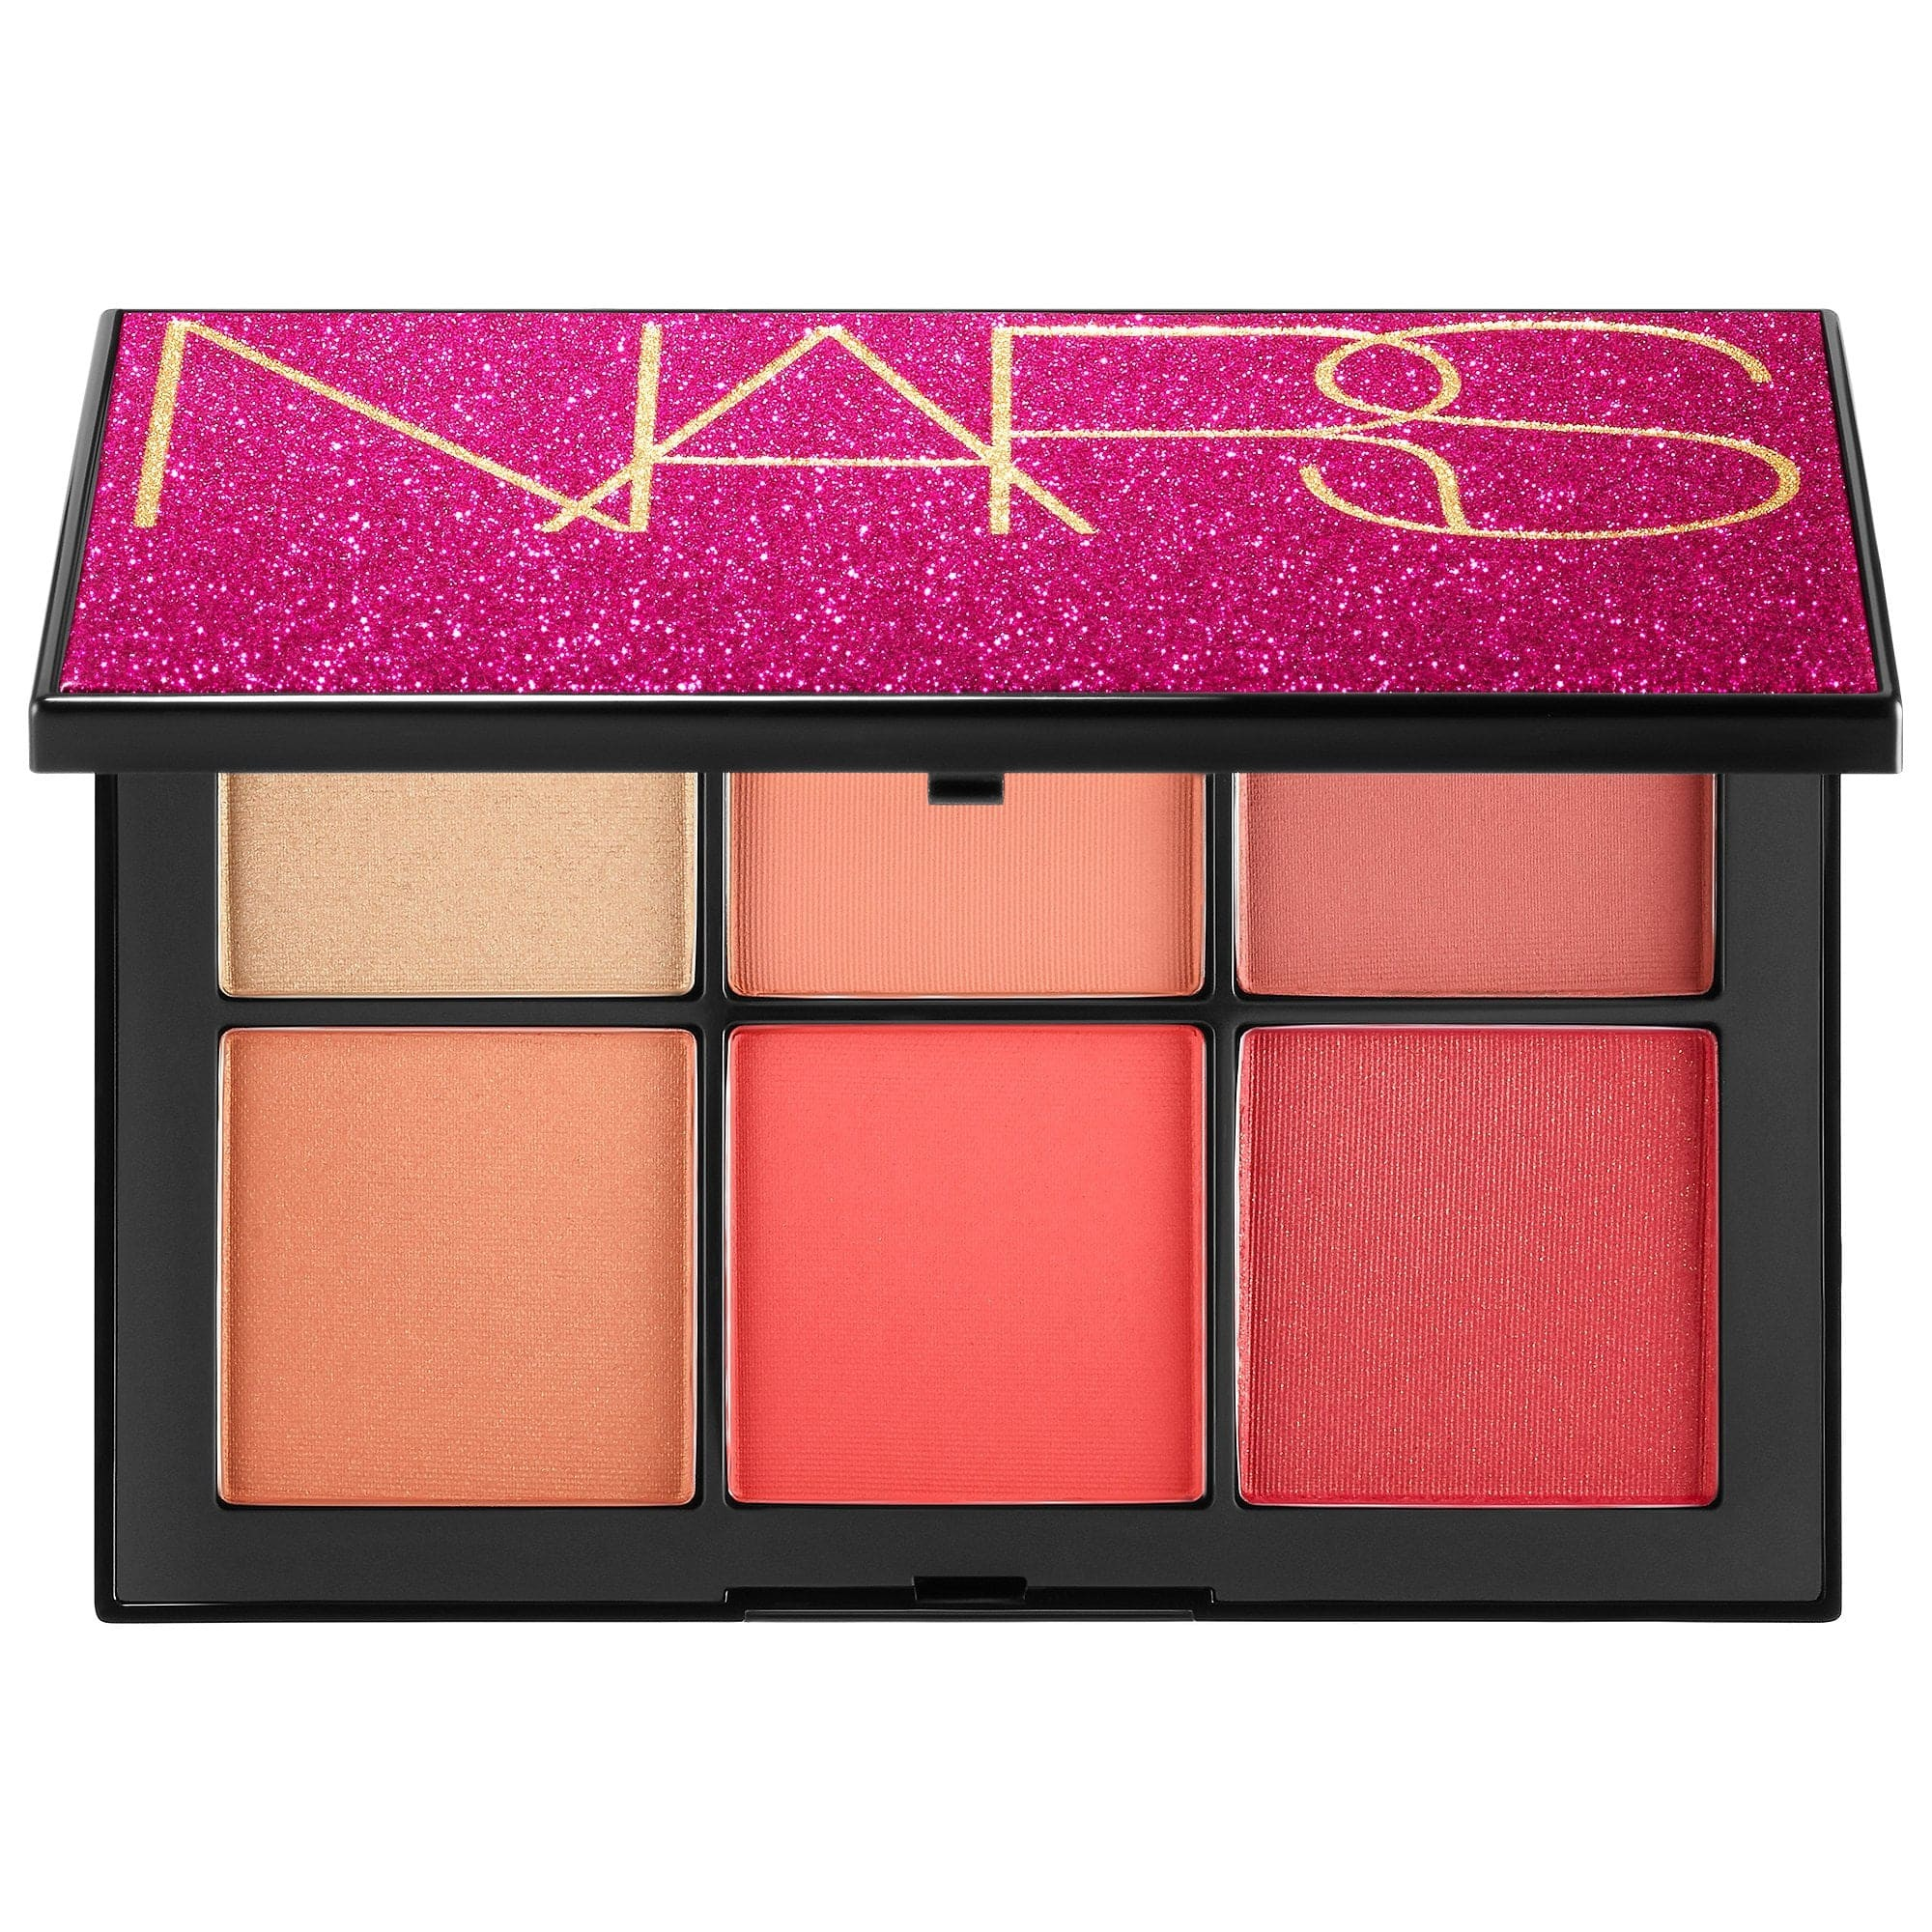 Nars Free Lover Cheek Palette